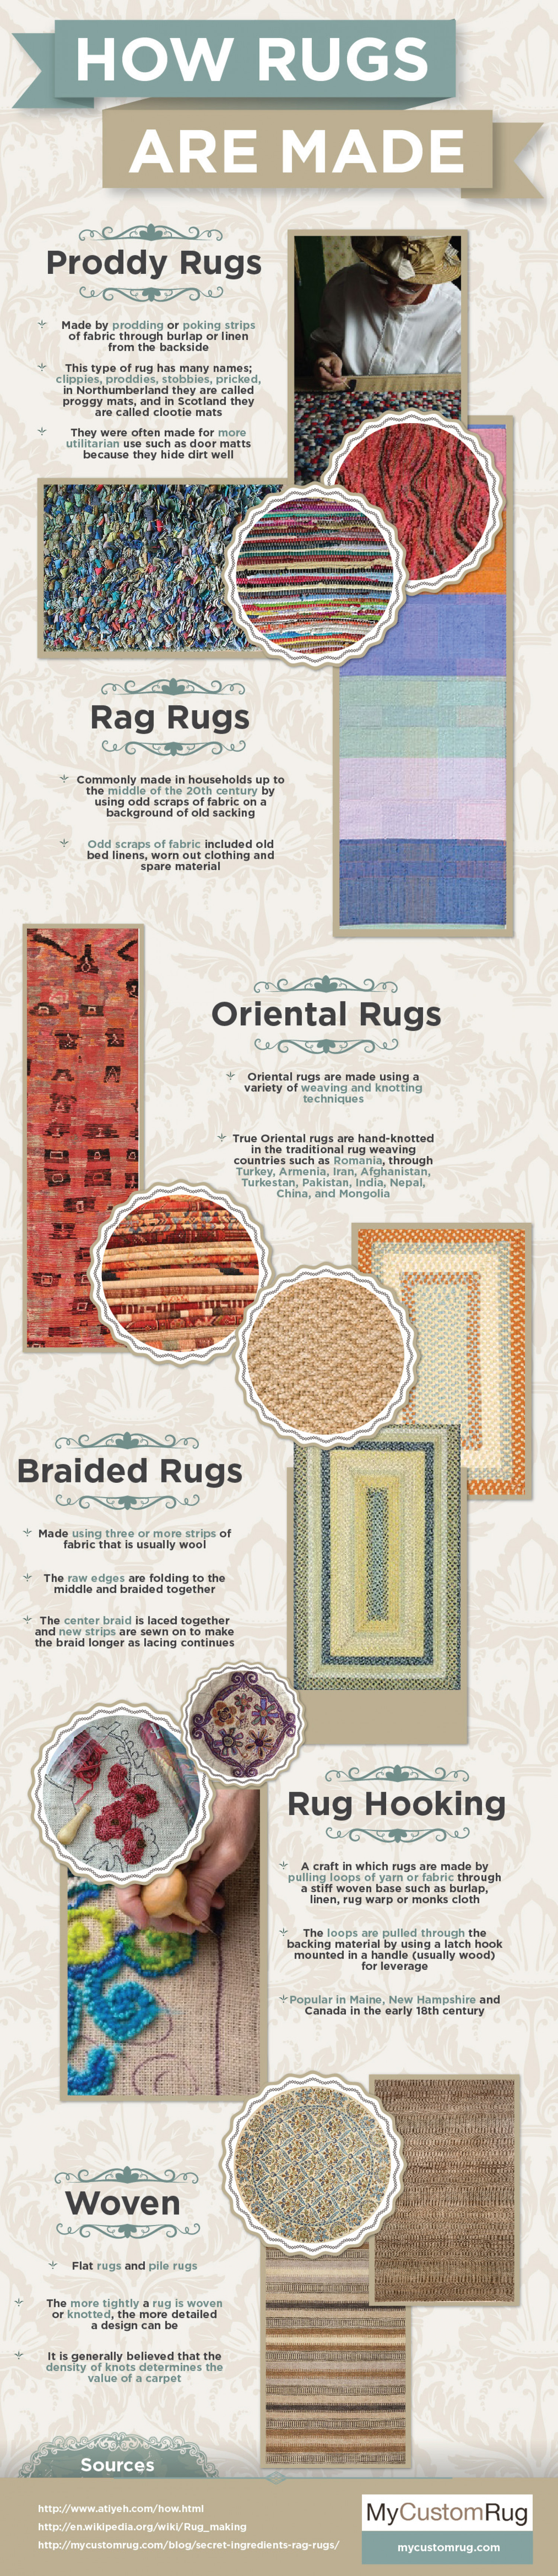 How Rugs are Made  Infographic